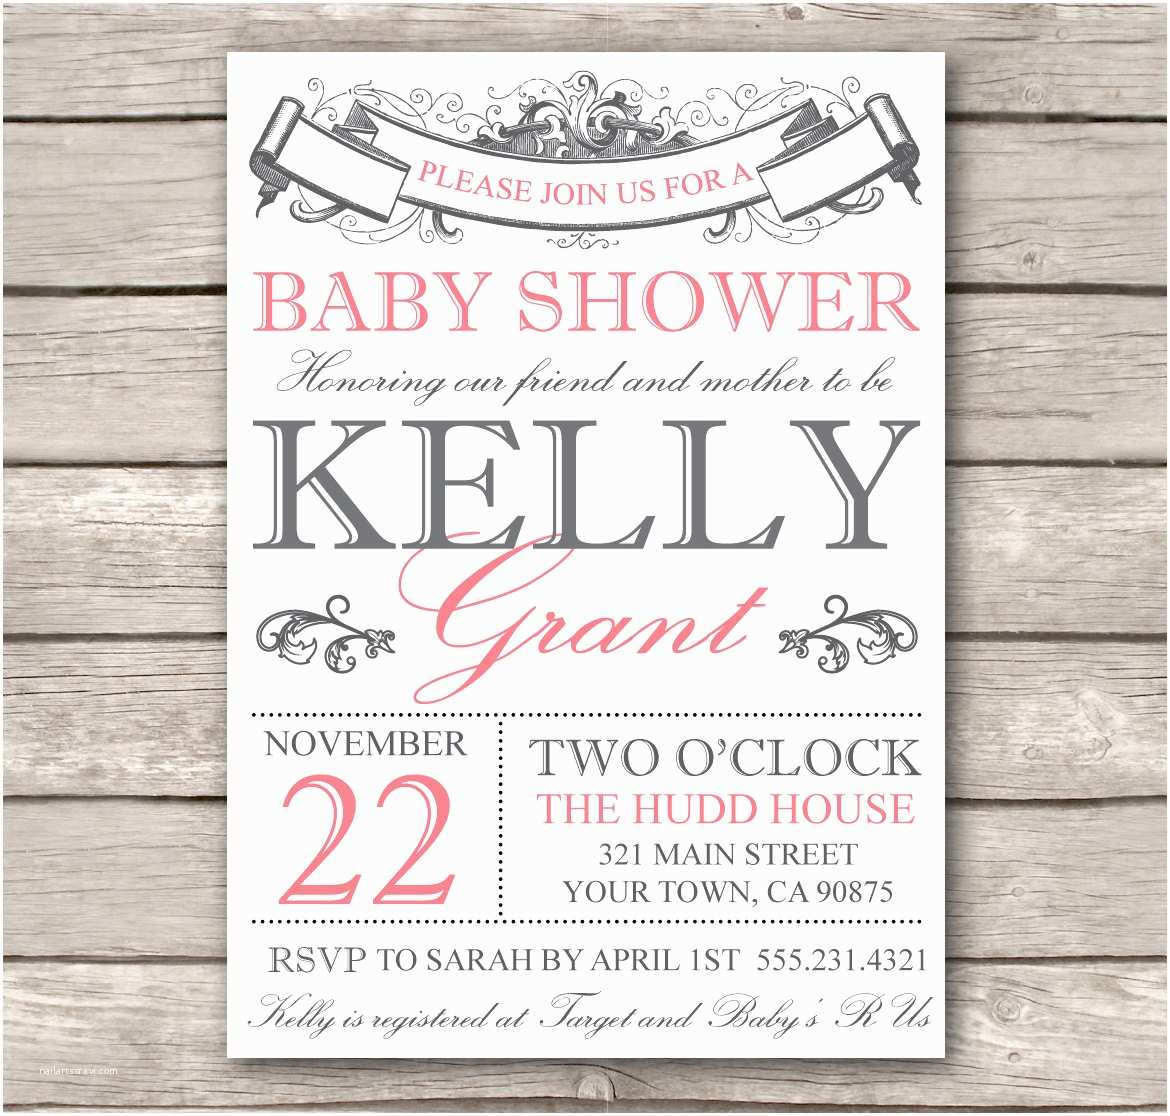 Create Baby Shower Invitations Make Your Own Baby Shower Invitations Line Free